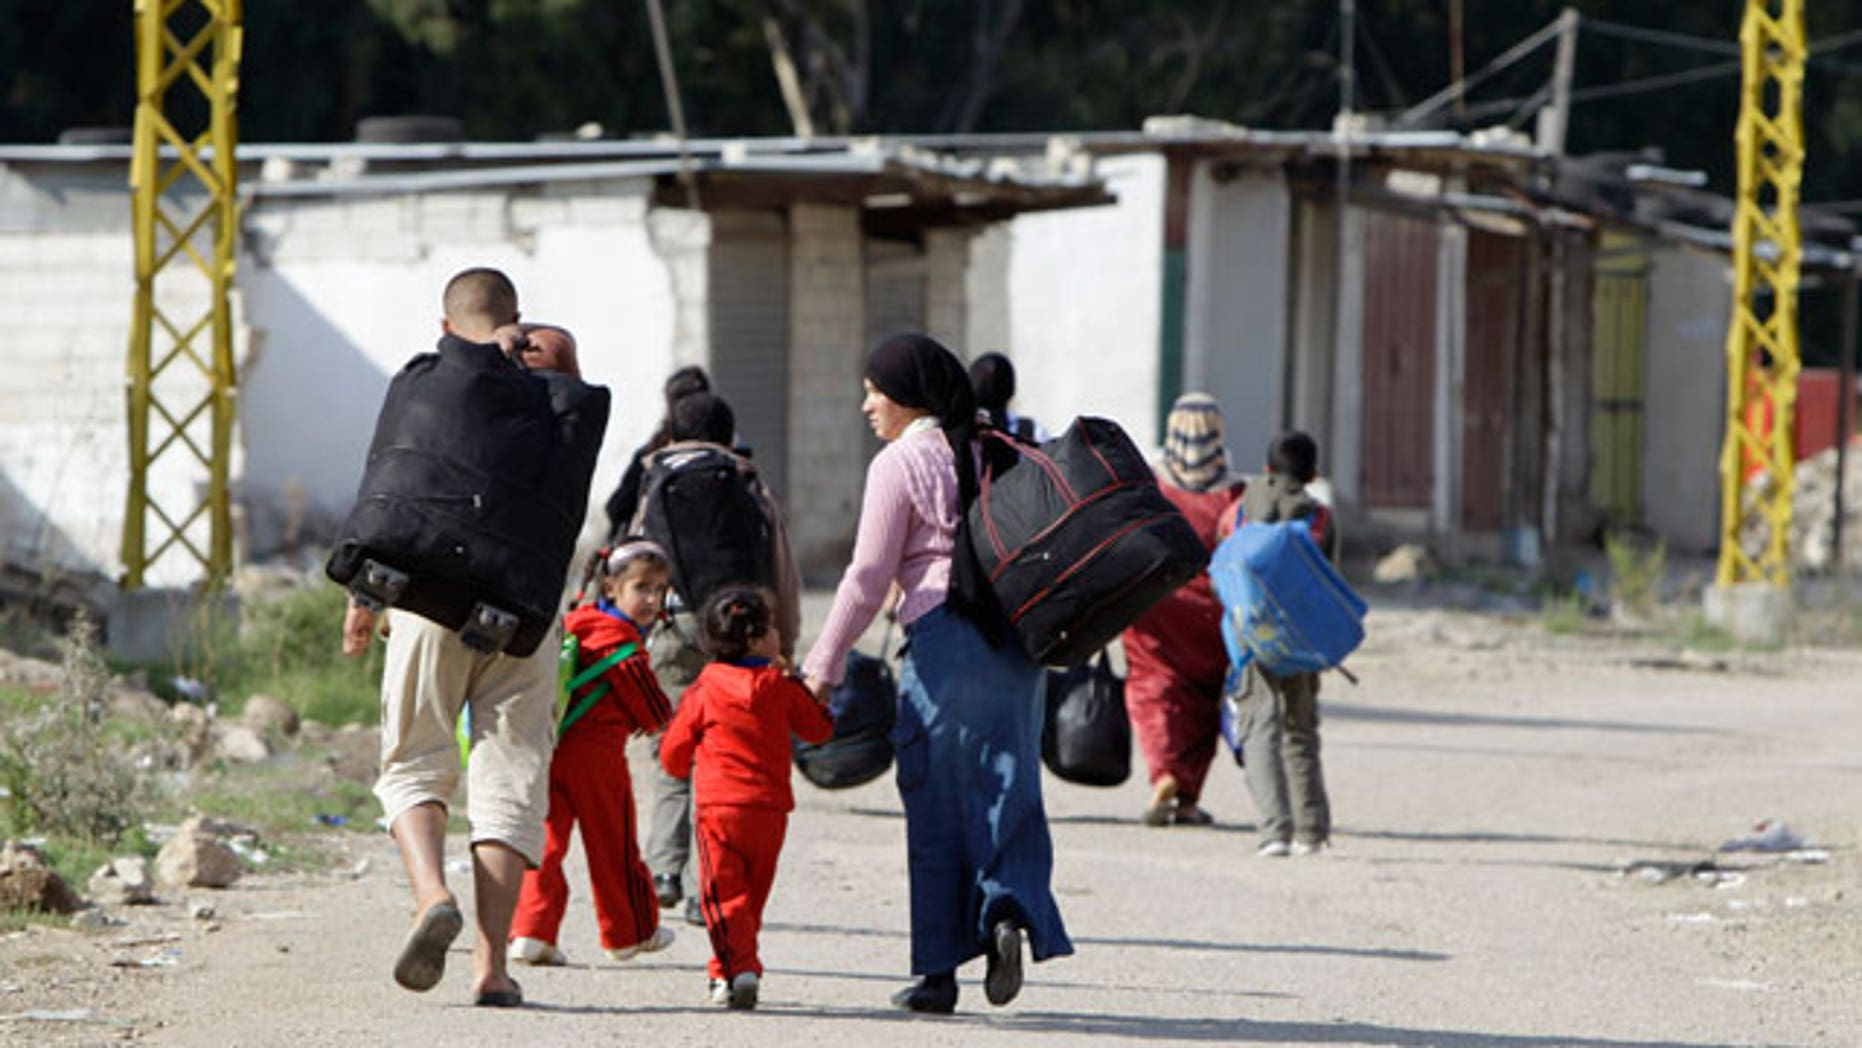 Oct. 31, 2011: Syrian citizens carry their belongings as they cross the Lebanon- Syria border illegally to return to Syria, from the village of Arida, north Lebanon.